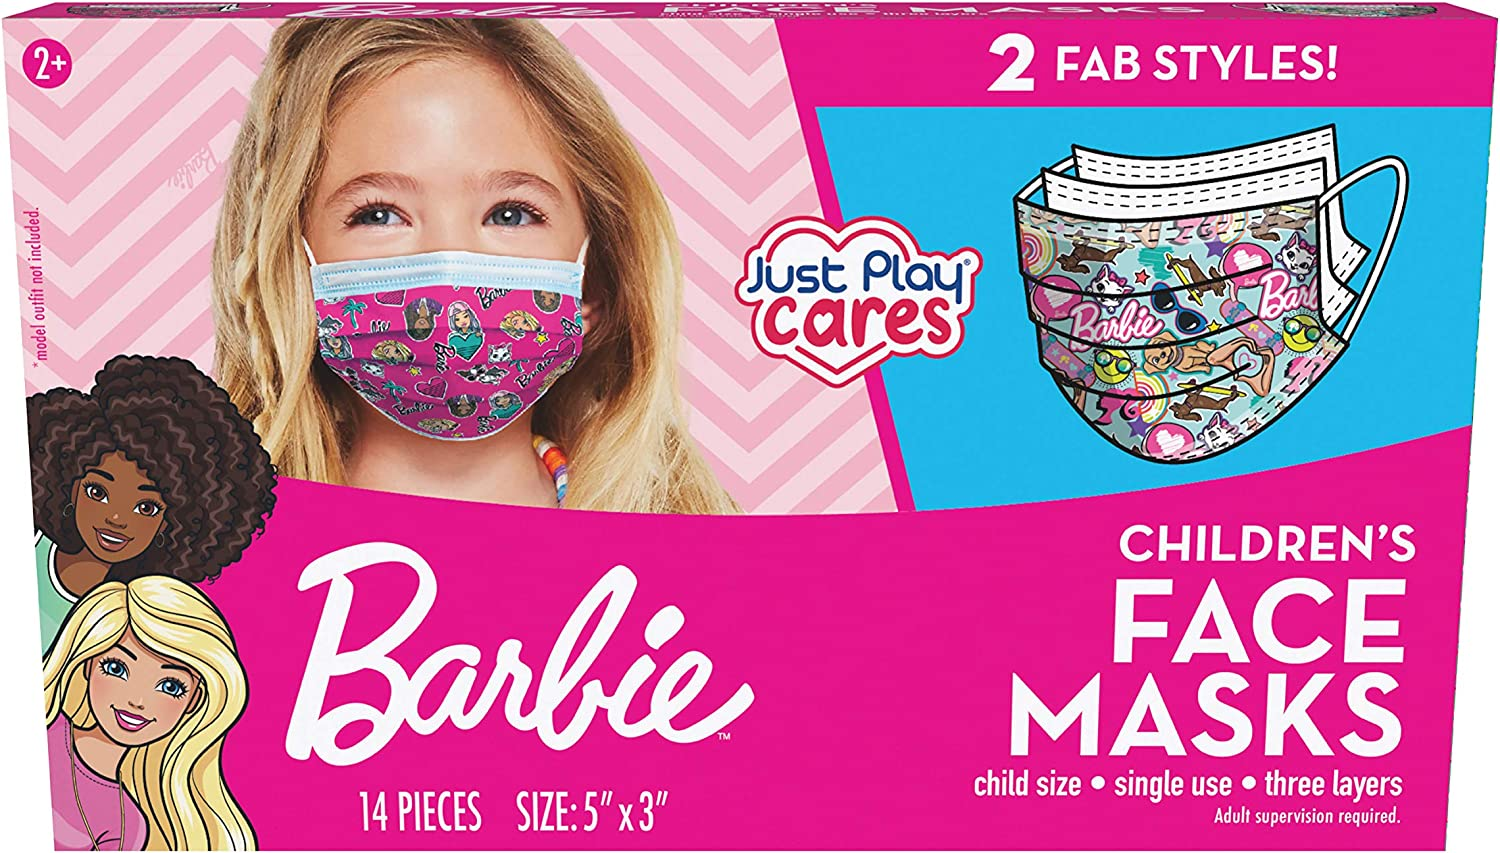 Barbie Children's Single Use Face Mask, 14 Count, Small, Ages 2-7, Multi (61052)